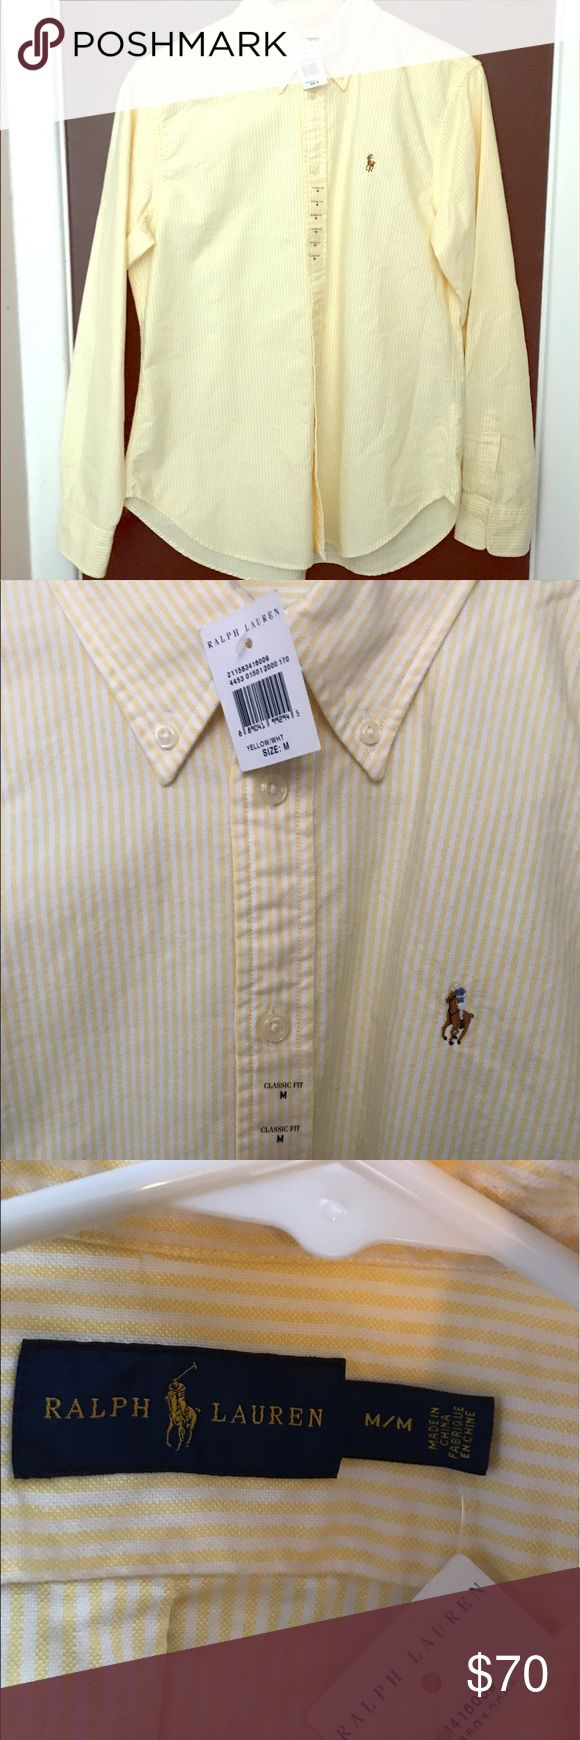 NEW Ralph Lauren Oxford Shirt Ralph Lauren Women's Oxford Shirt in Yellow & White Pinstripes. Classic Fit. Medium Ralph Lauren Tops Button Down Shirts